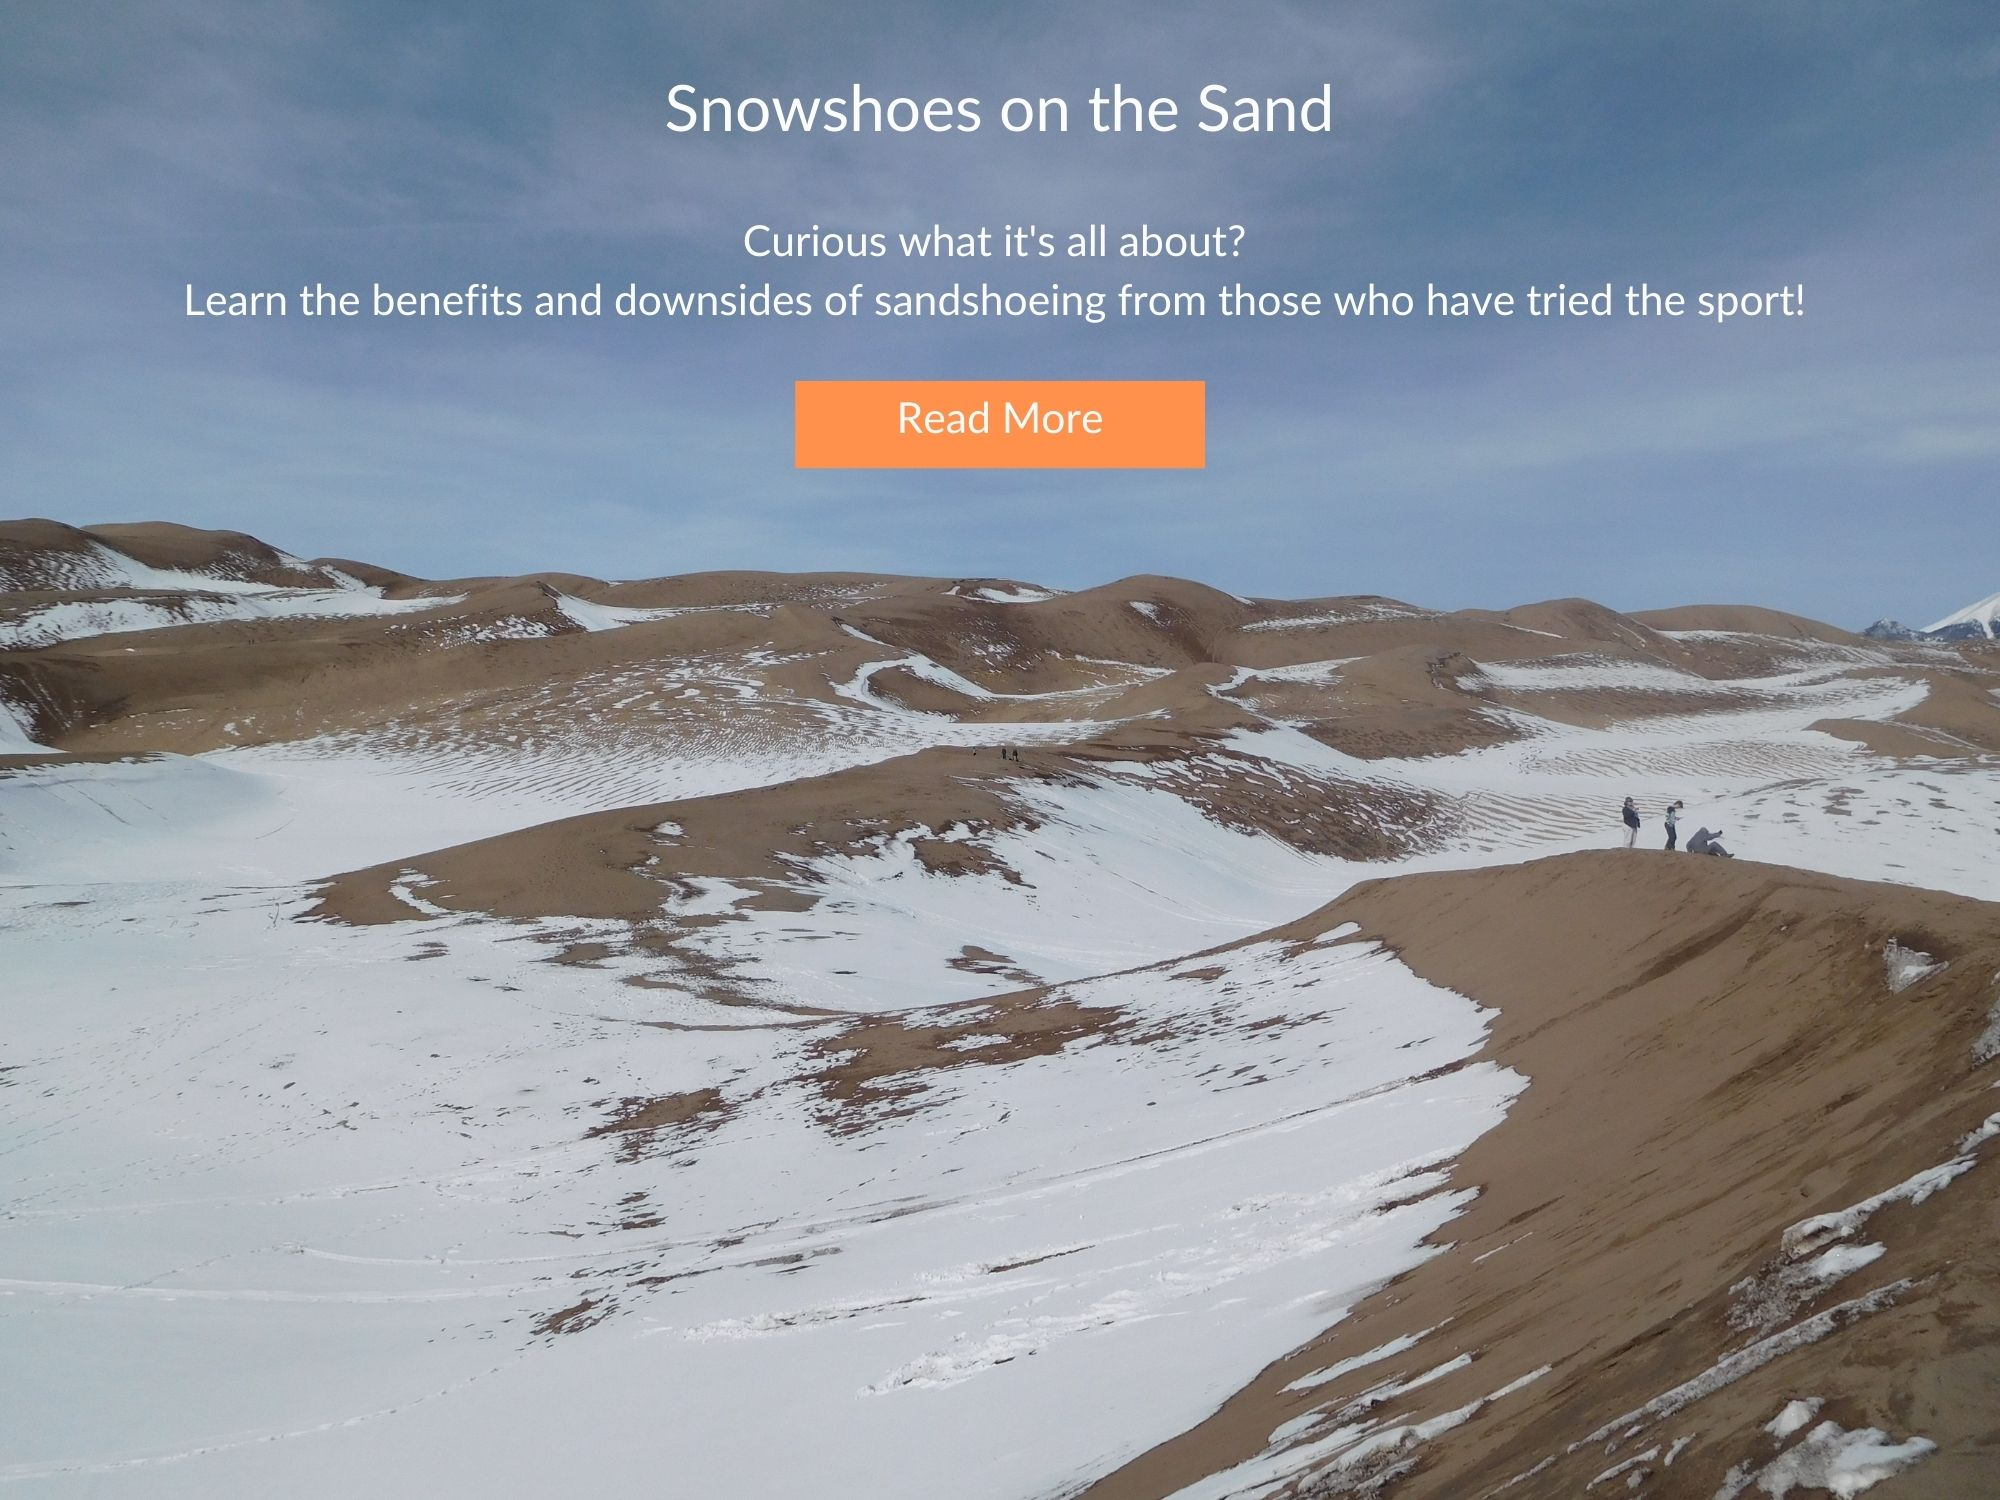 sand and snow with blue sky and text